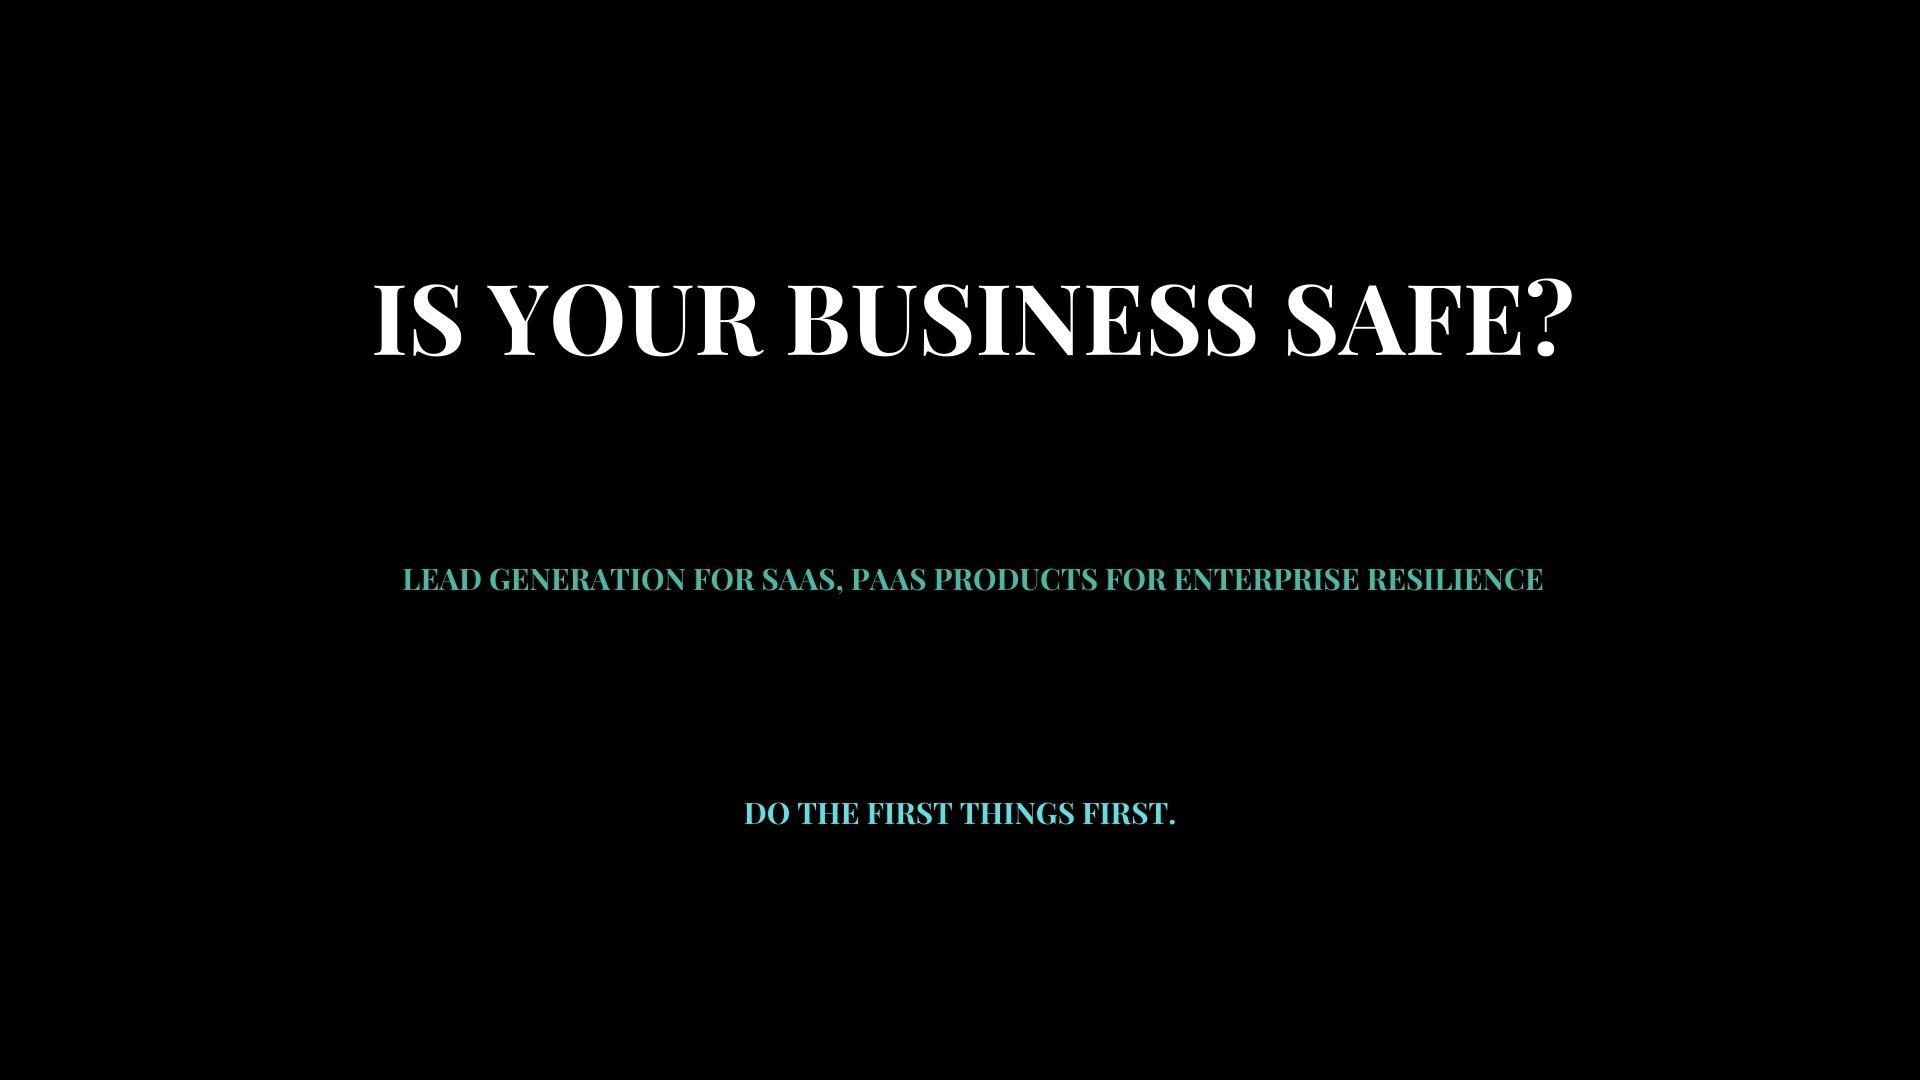 Is your business safe?  - Lead generation for PaaS, SaaS solutions for enterprise resilience